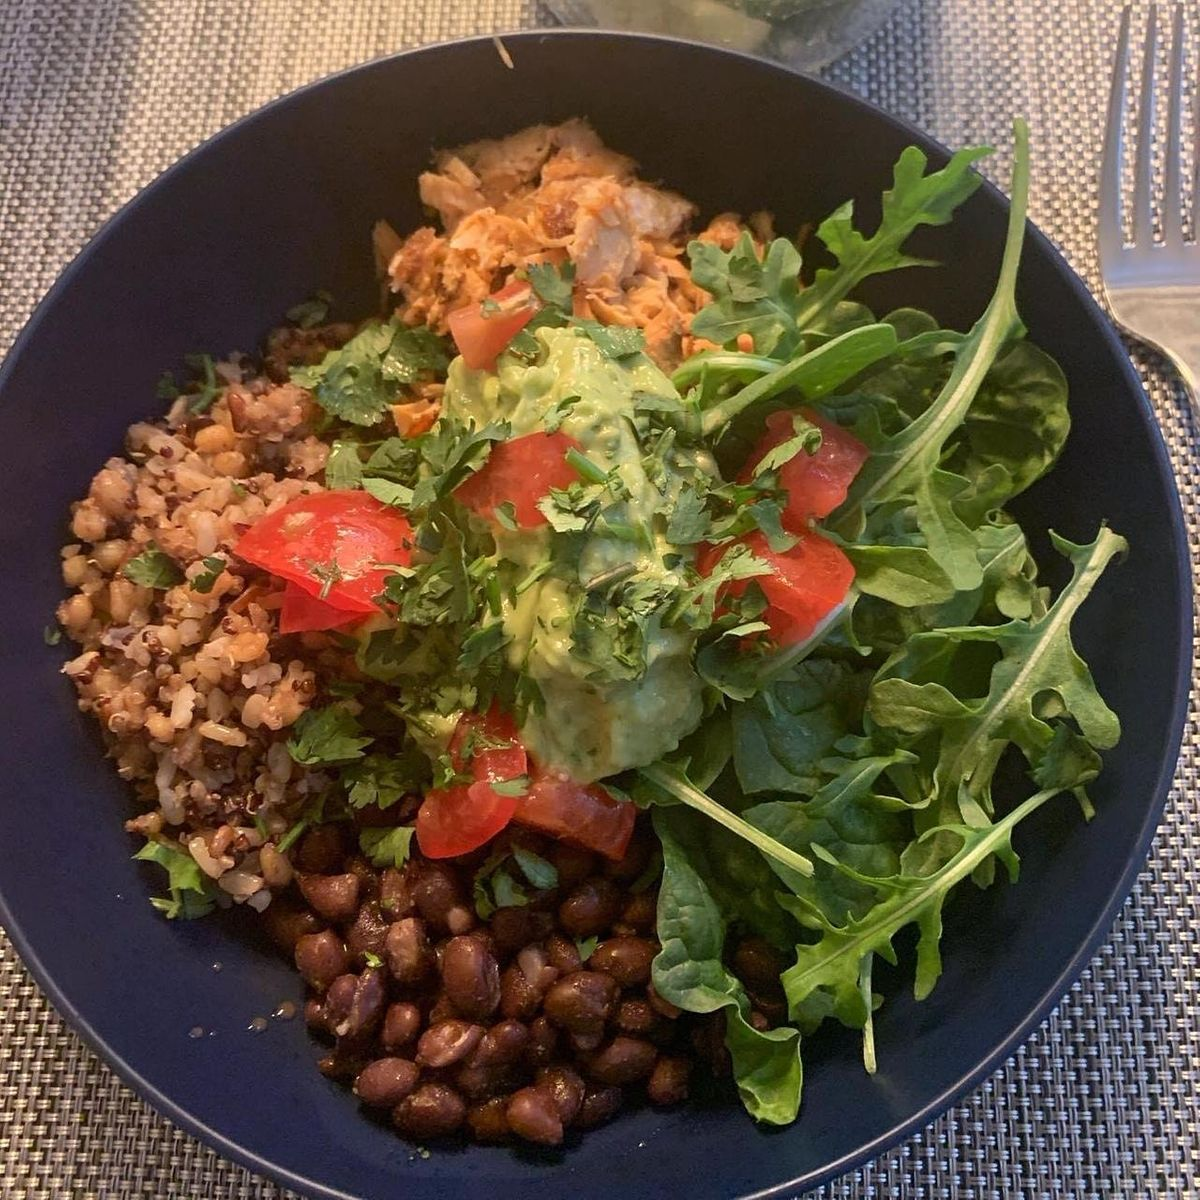 Beyond Quinoa - Discover whole grain goodness (In-person option)